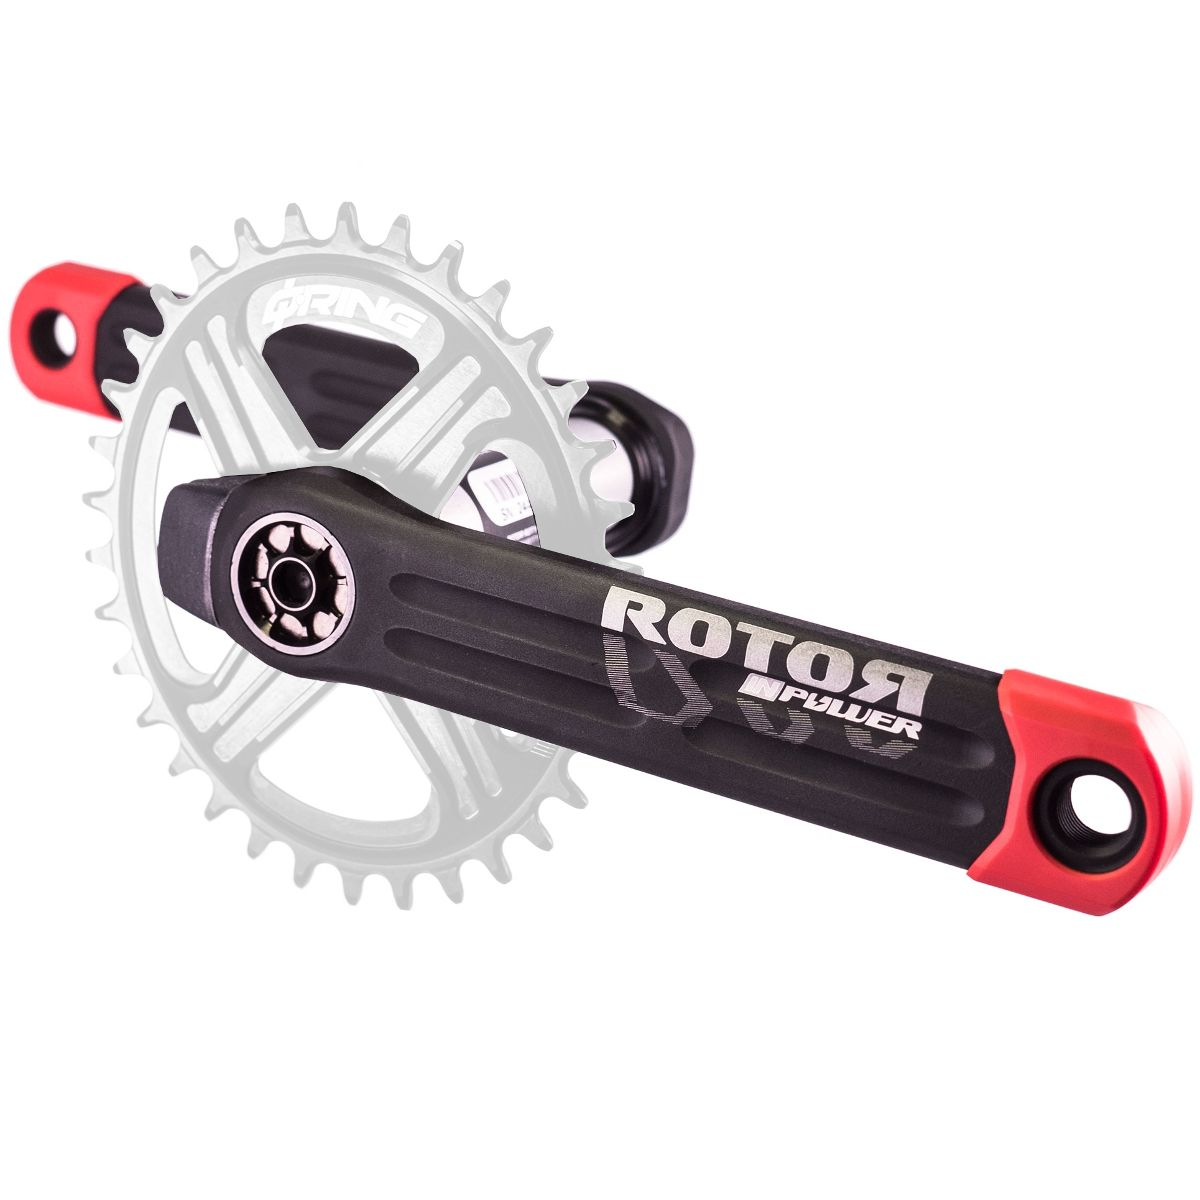 INpower MTB DM Crank with Built-In Power Meter